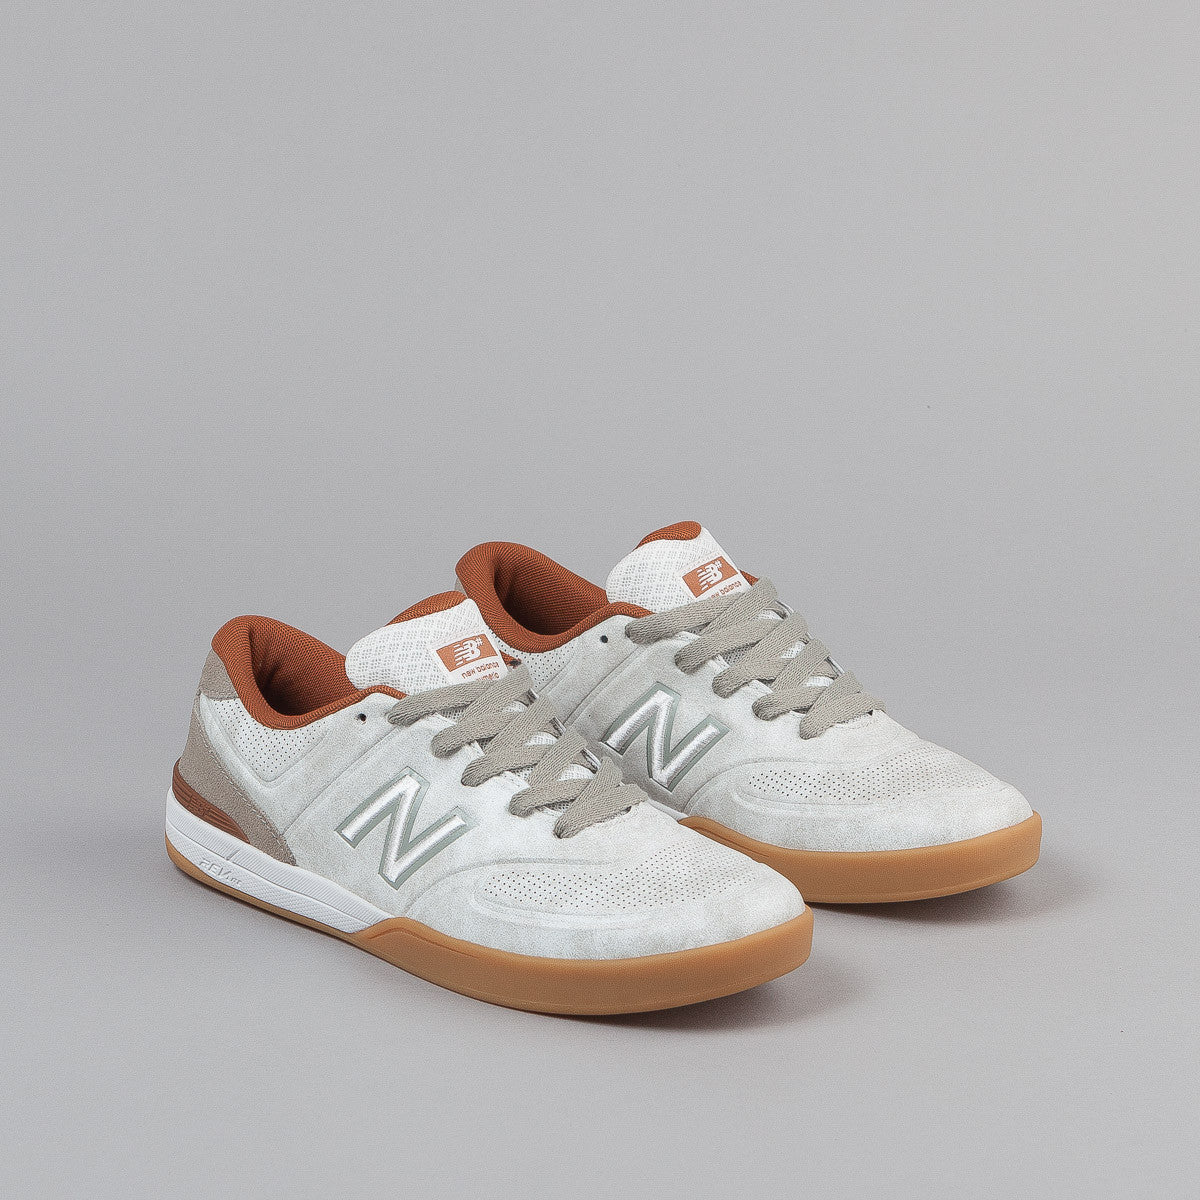 New Balance Numeric Logan 637 Shoes - Cloud / Gum